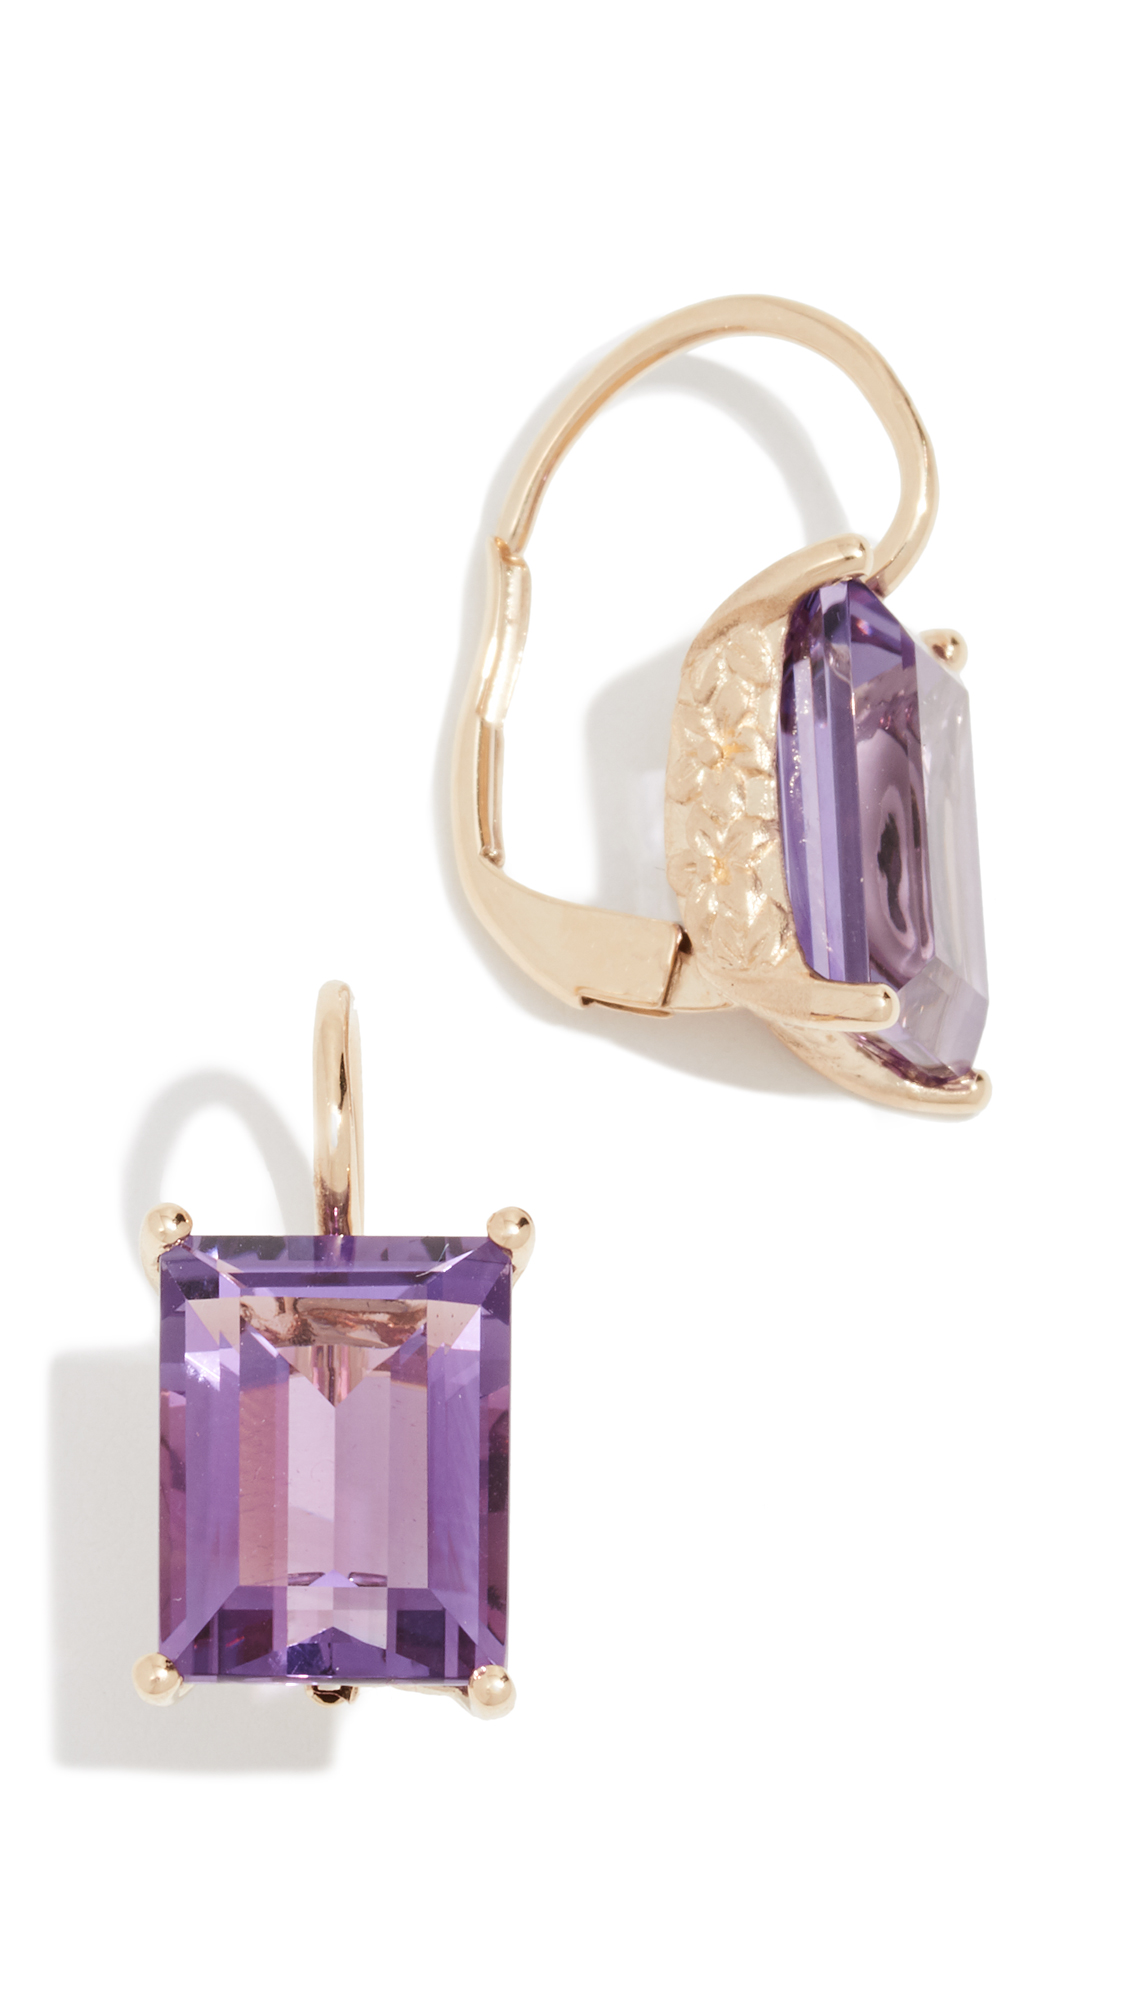 JANE TAYLOR 14K Baguette Drop Earrings in Yellow Gold/Purple